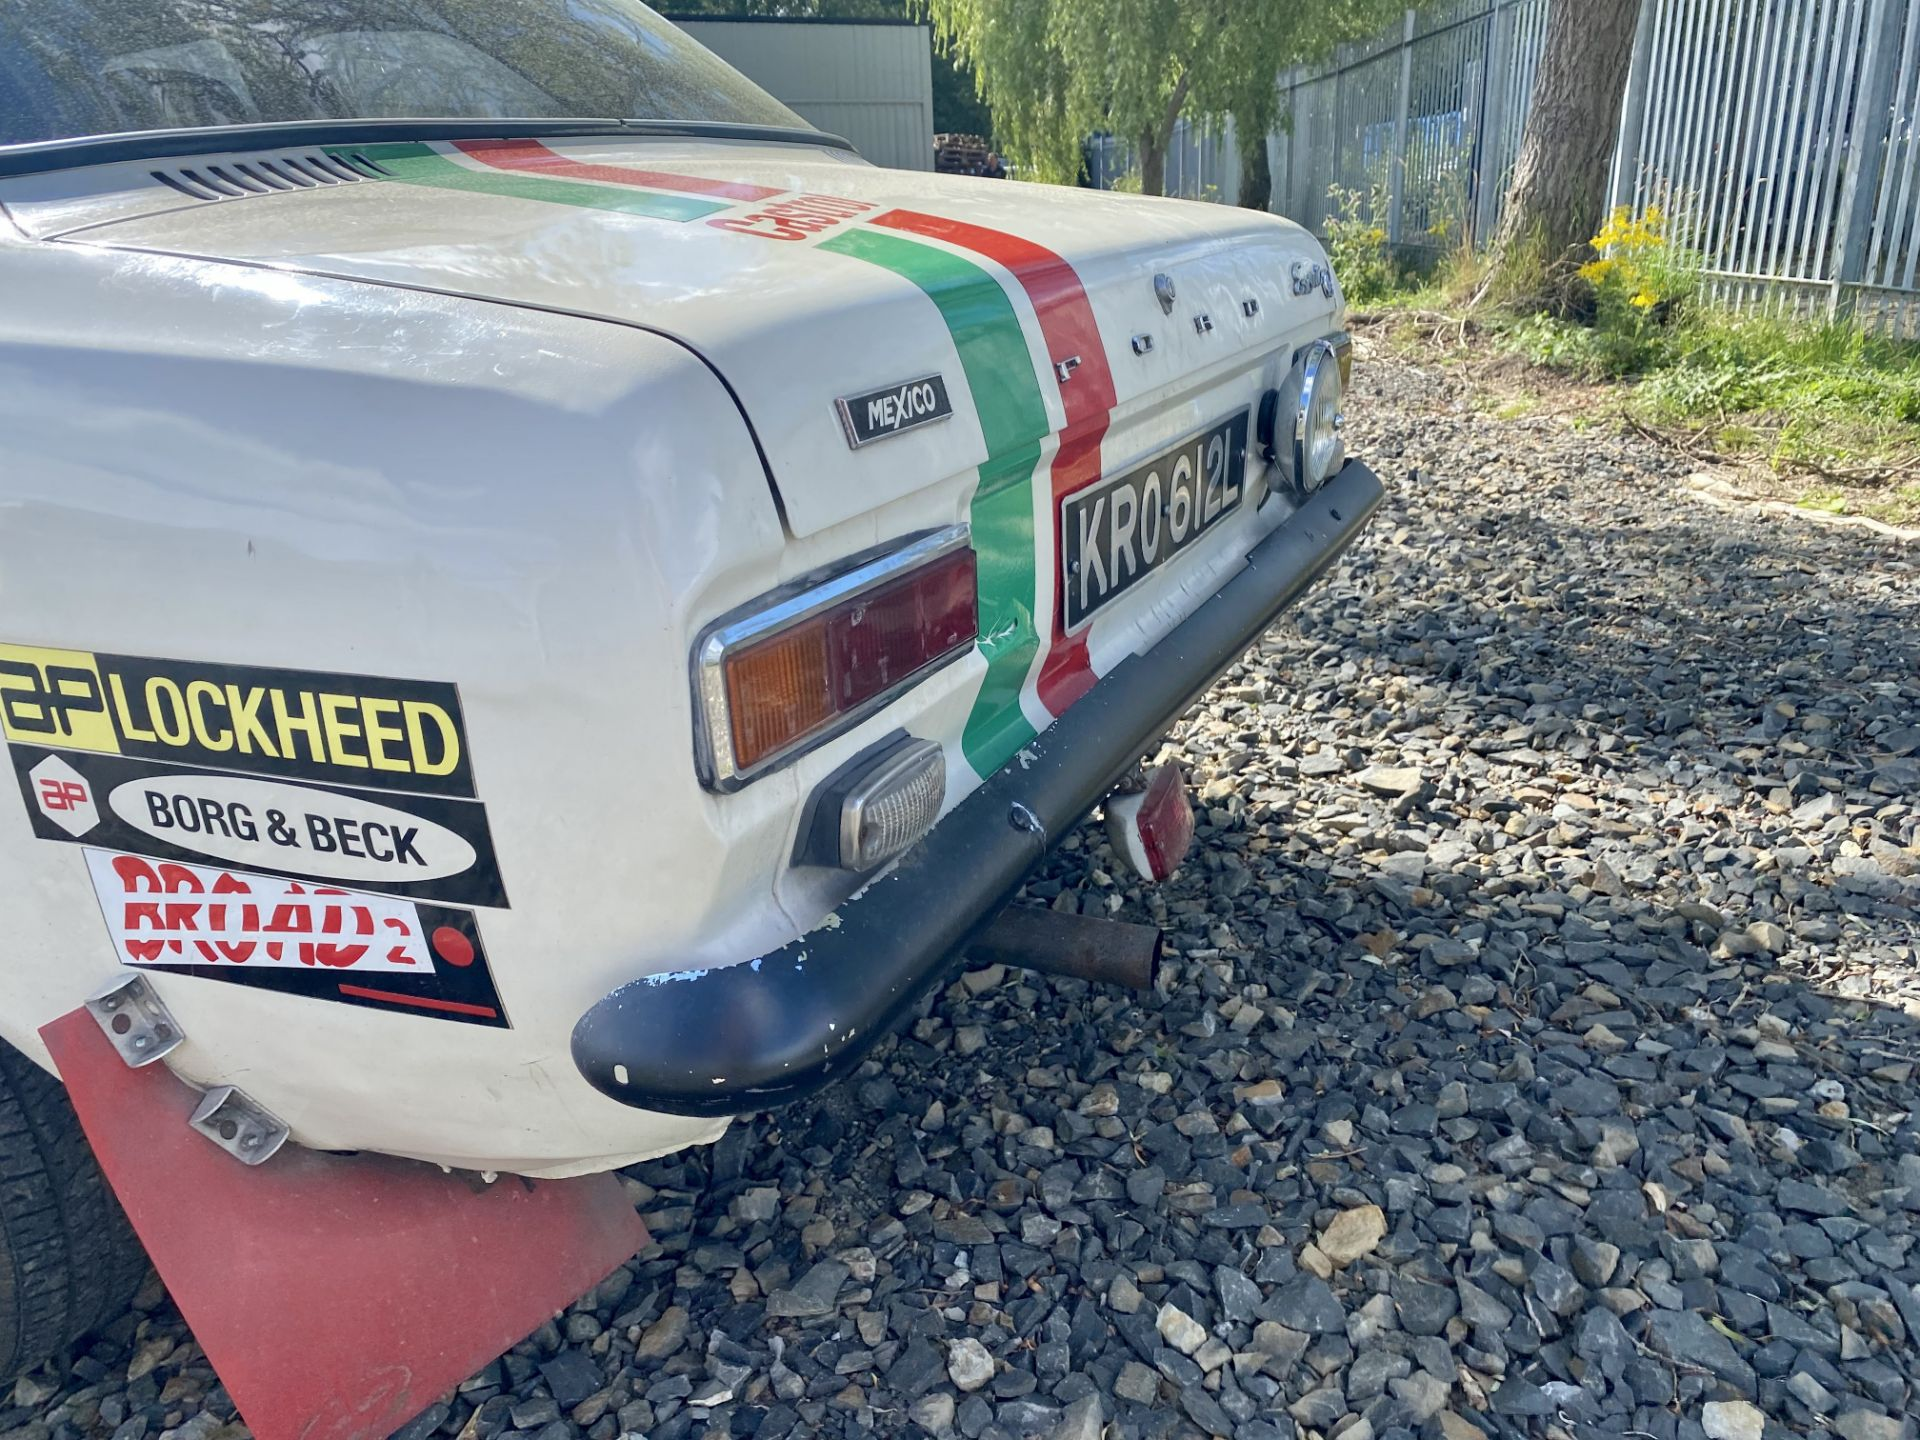 Ford Escort Mexico - Image 30 of 51